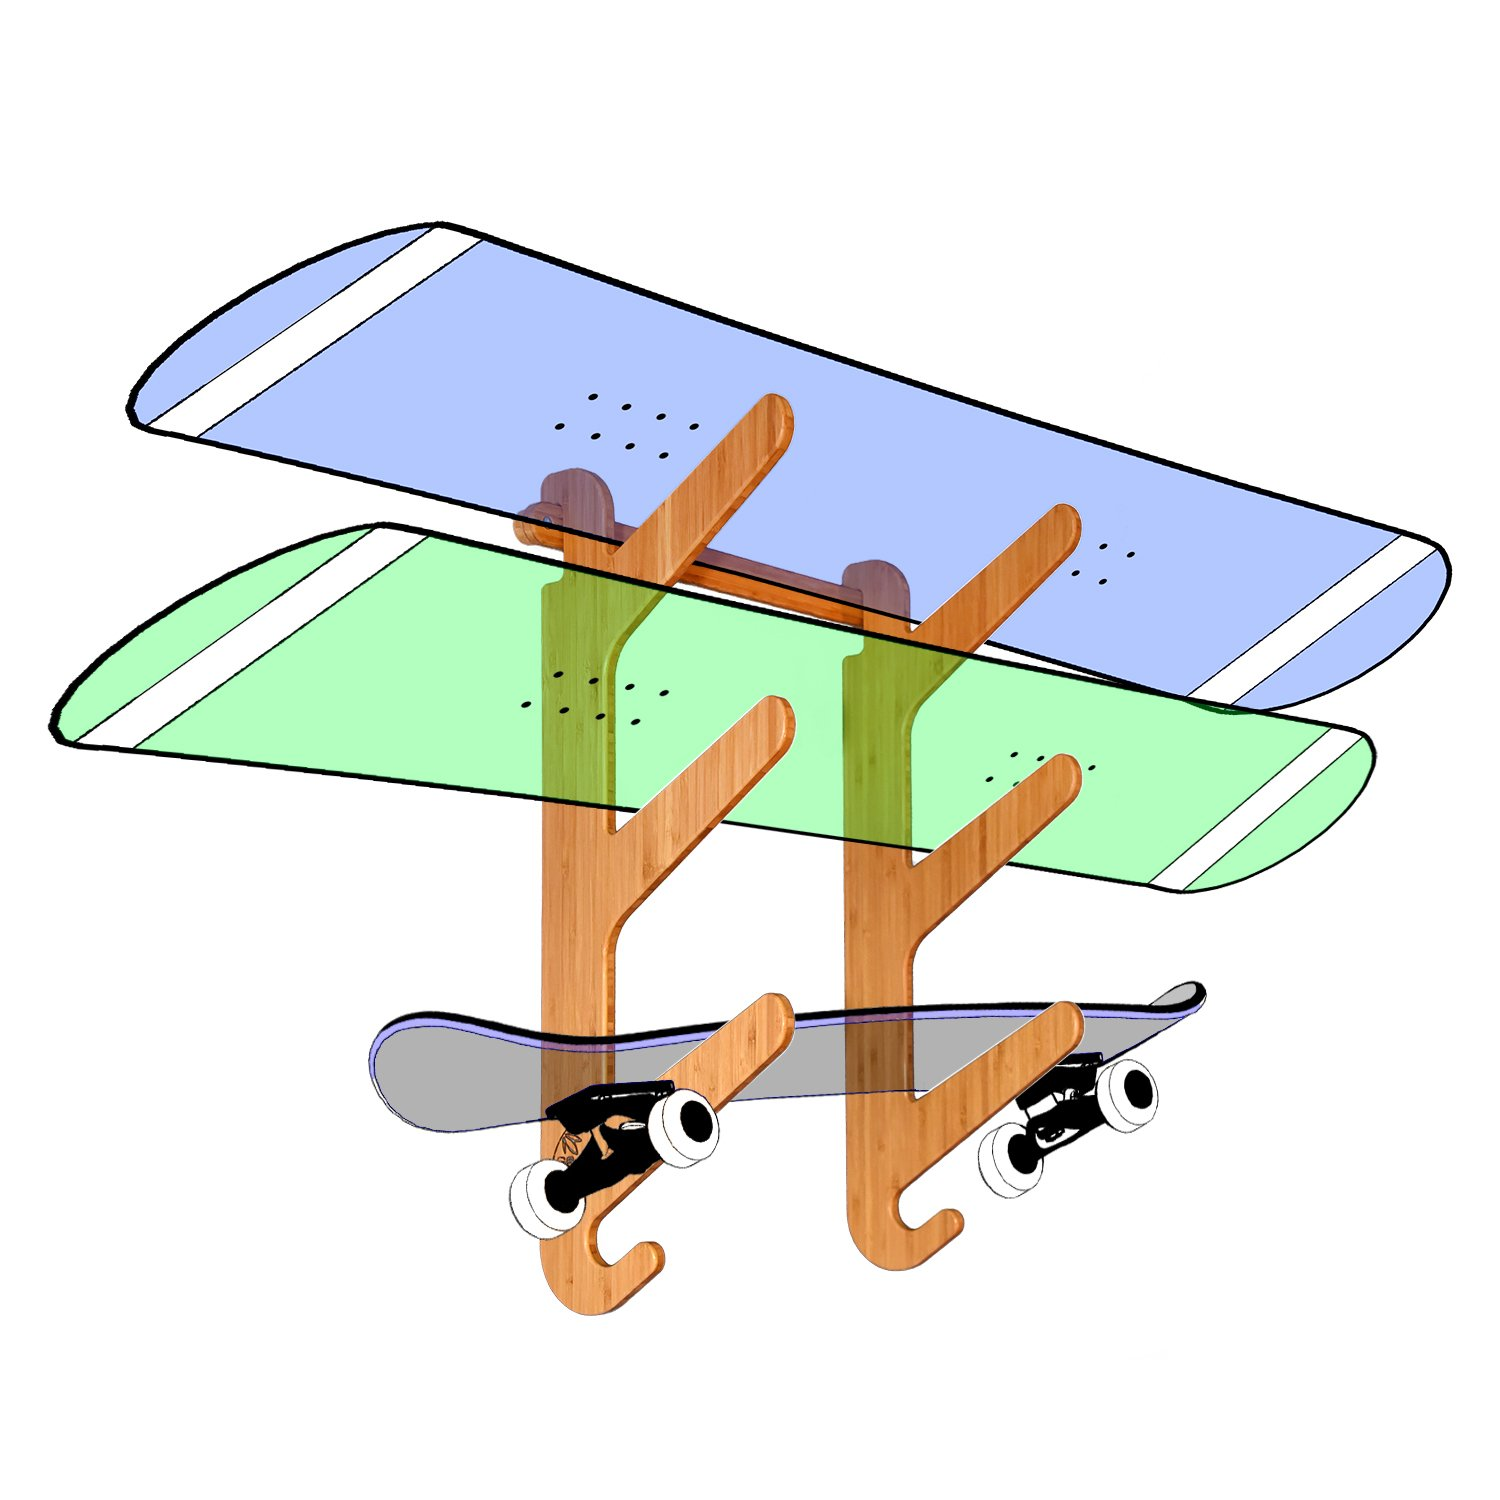 Bamboo Snowboard Wall Mount for 3 Snowboards or Longboards - Grassracks Moloka'i Trip by Grassracks